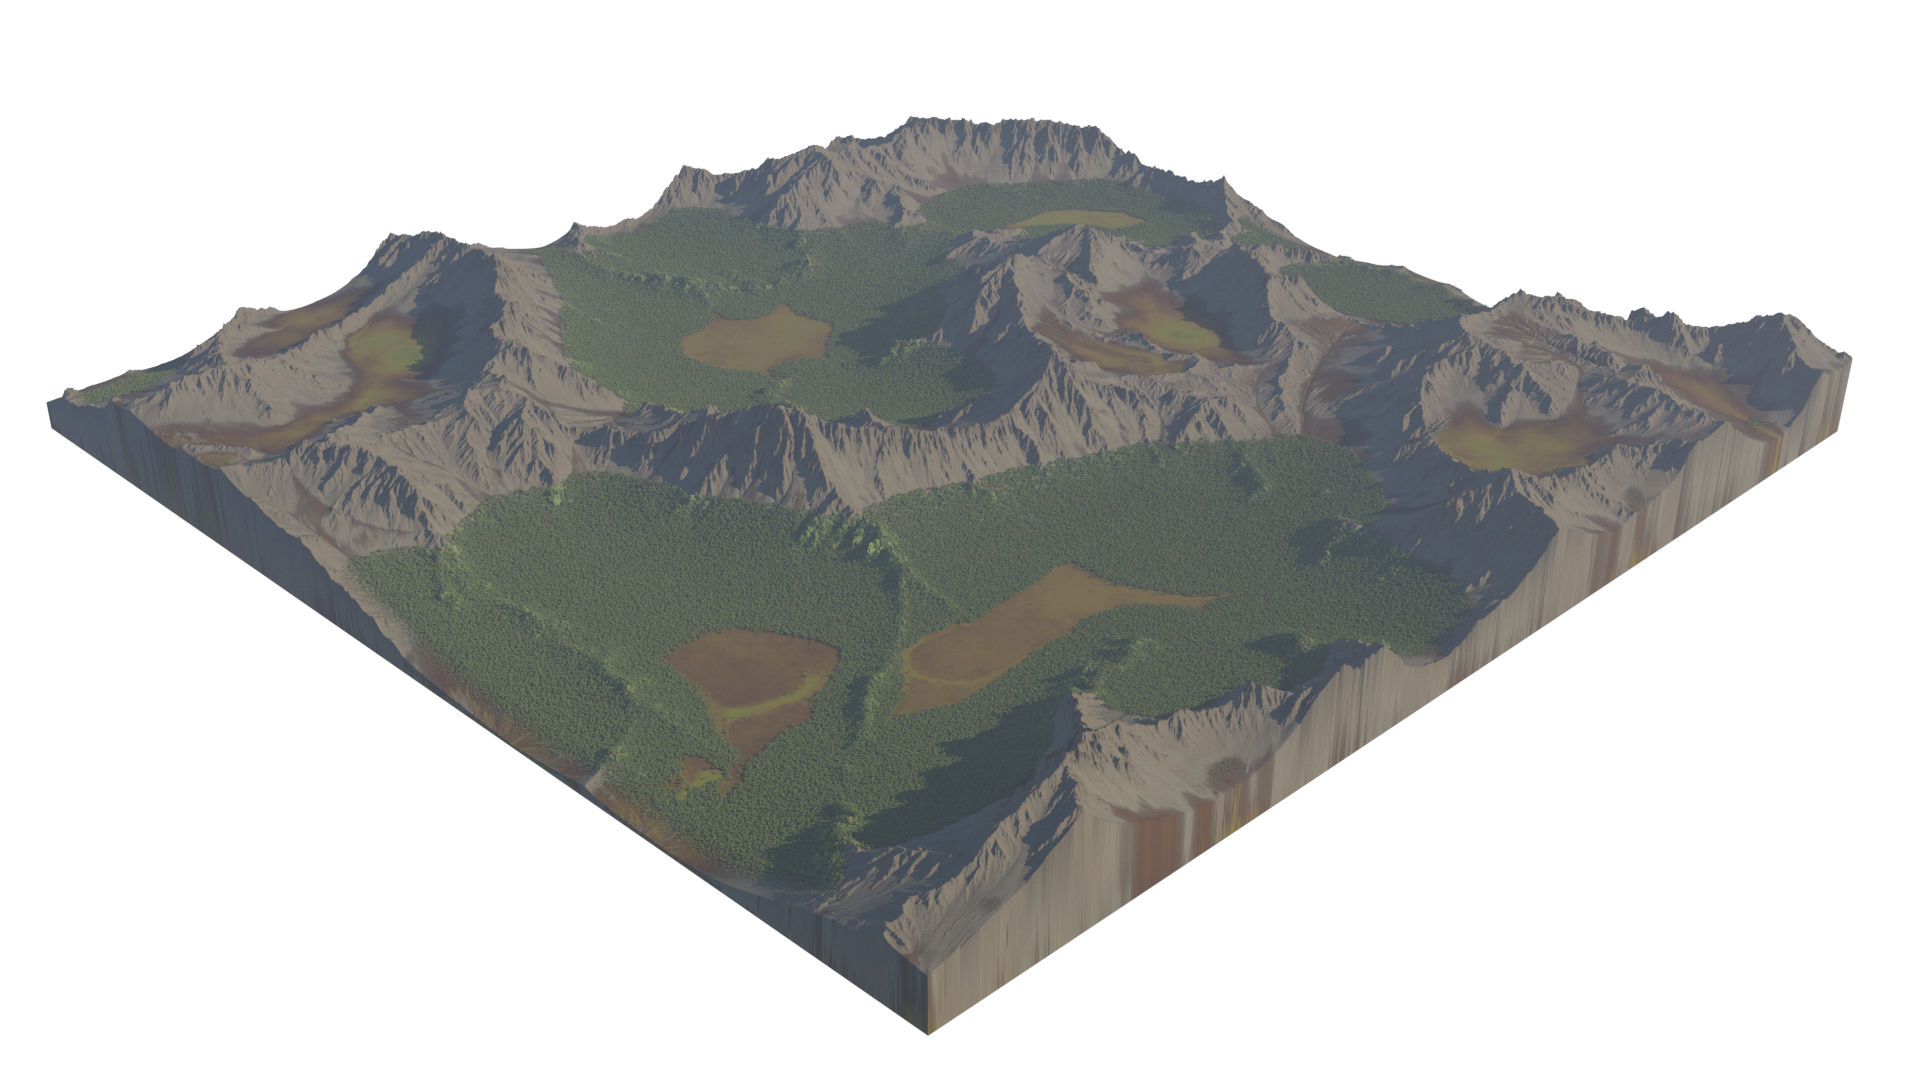 Mountainswithgrass_01_